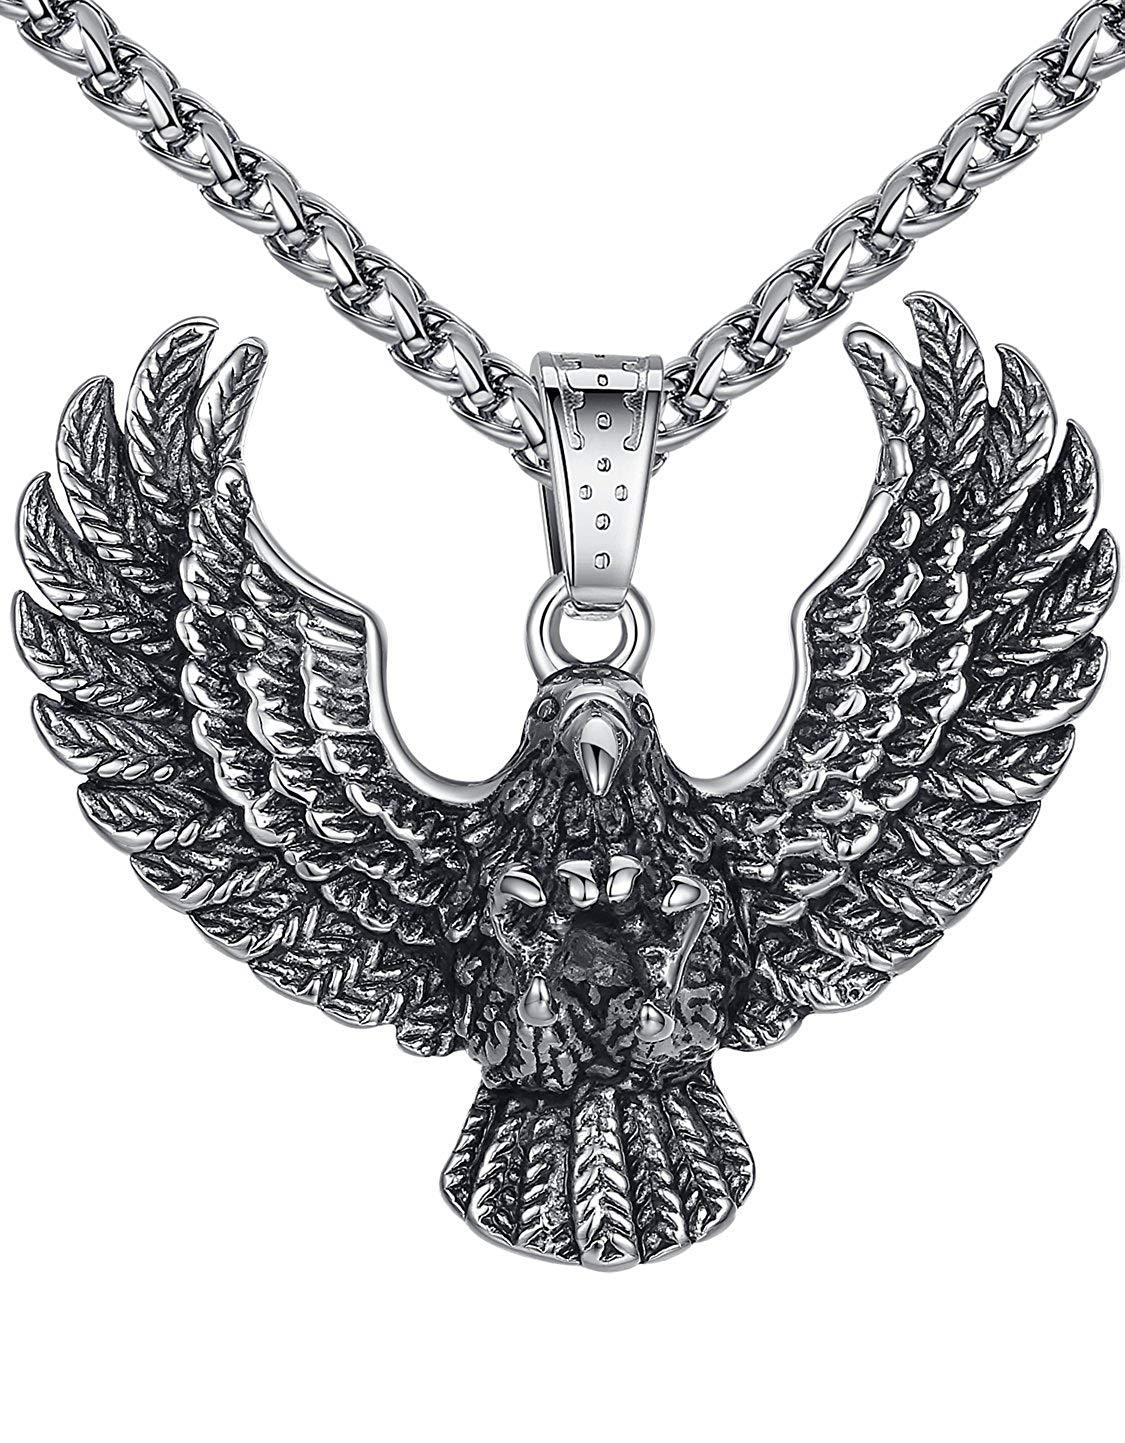 Aoiy Men's Stainless Steel Large Eagle Biker Pendant Necklace 24 Link Chain @ Sons of Odin™ -